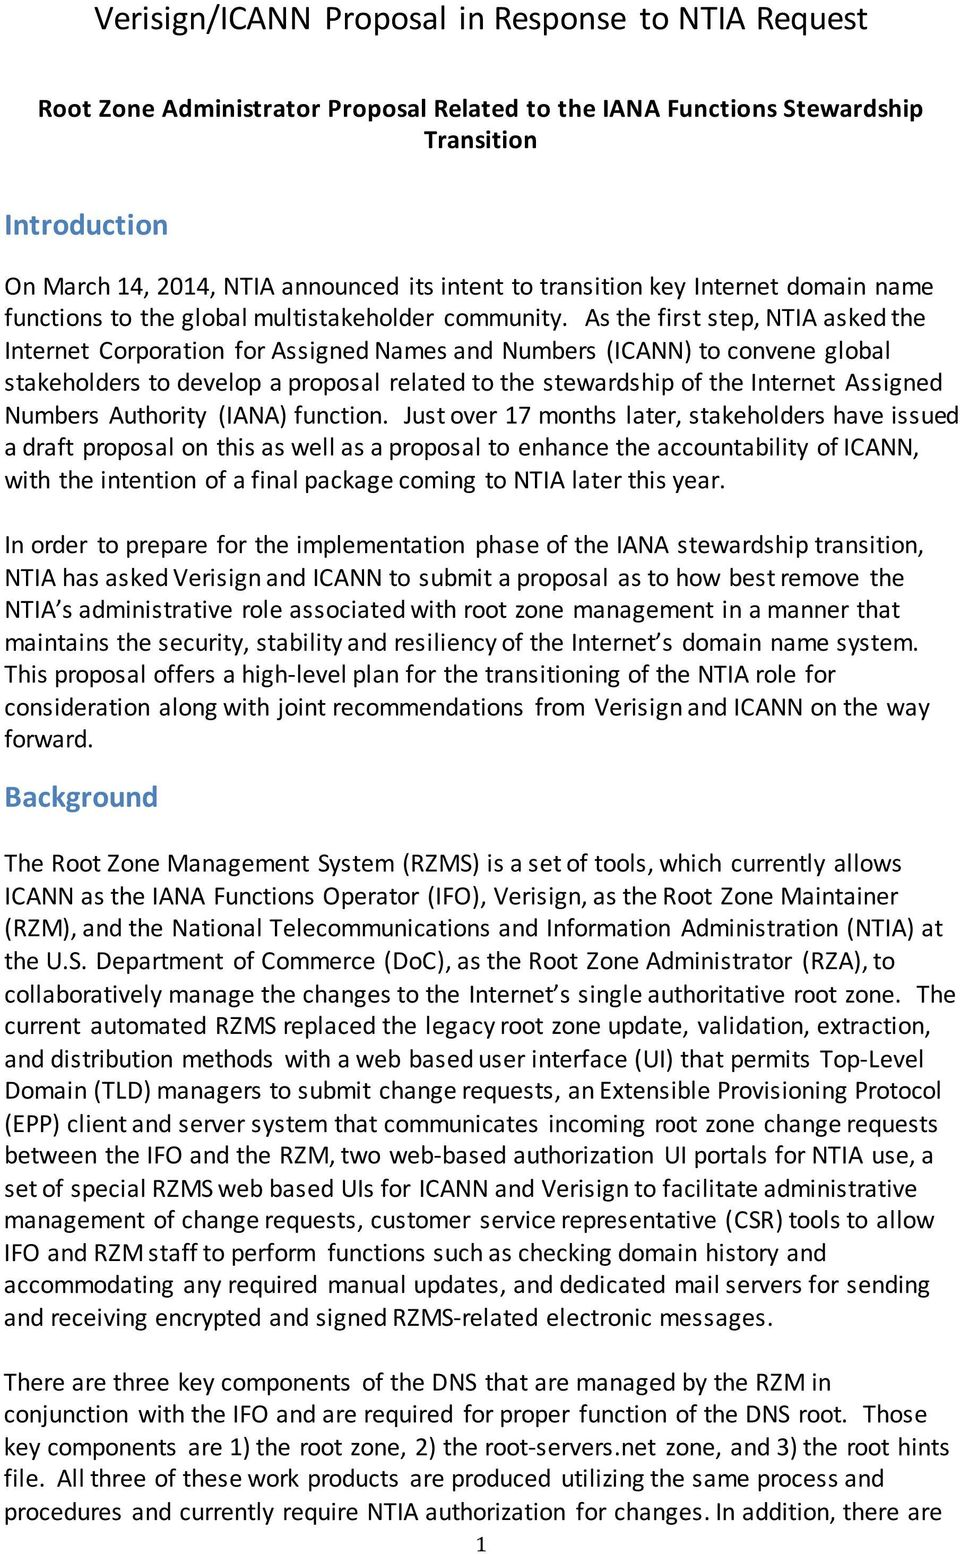 As the first step, NTIA asked the Internet Corporation for Assigned Names and Numbers (ICANN) to convene global stakeholders to develop a proposal related to the stewardship of the Internet Assigned